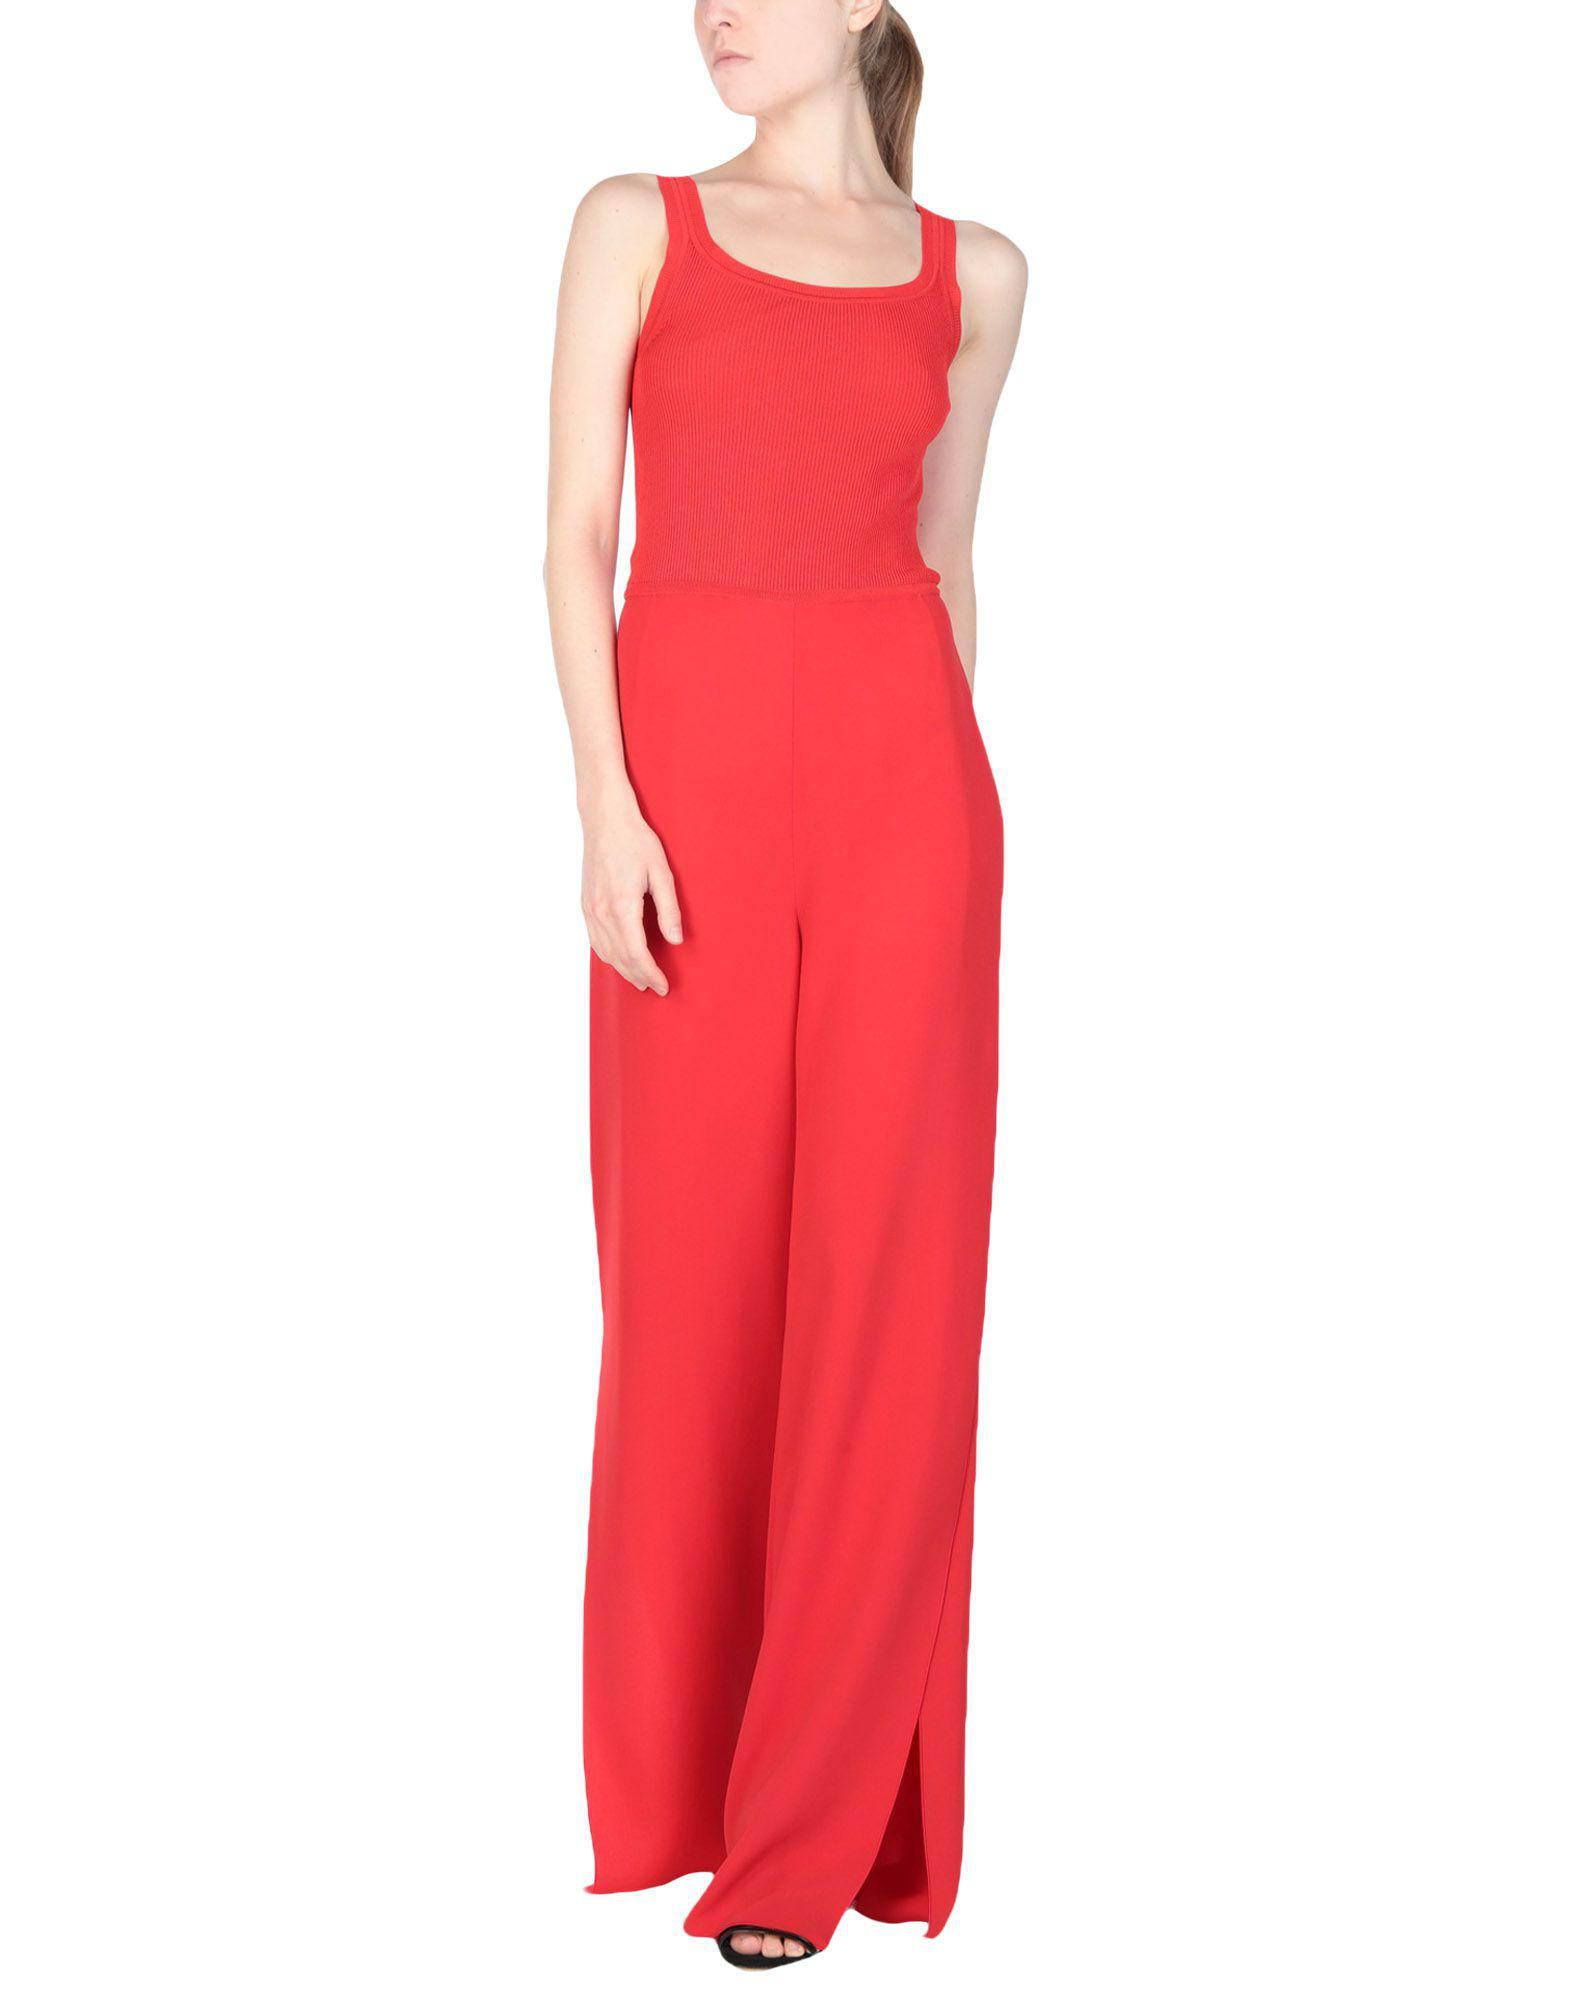 60036f1e4b4 Lyst - Max Mara Jumpsuit in Red